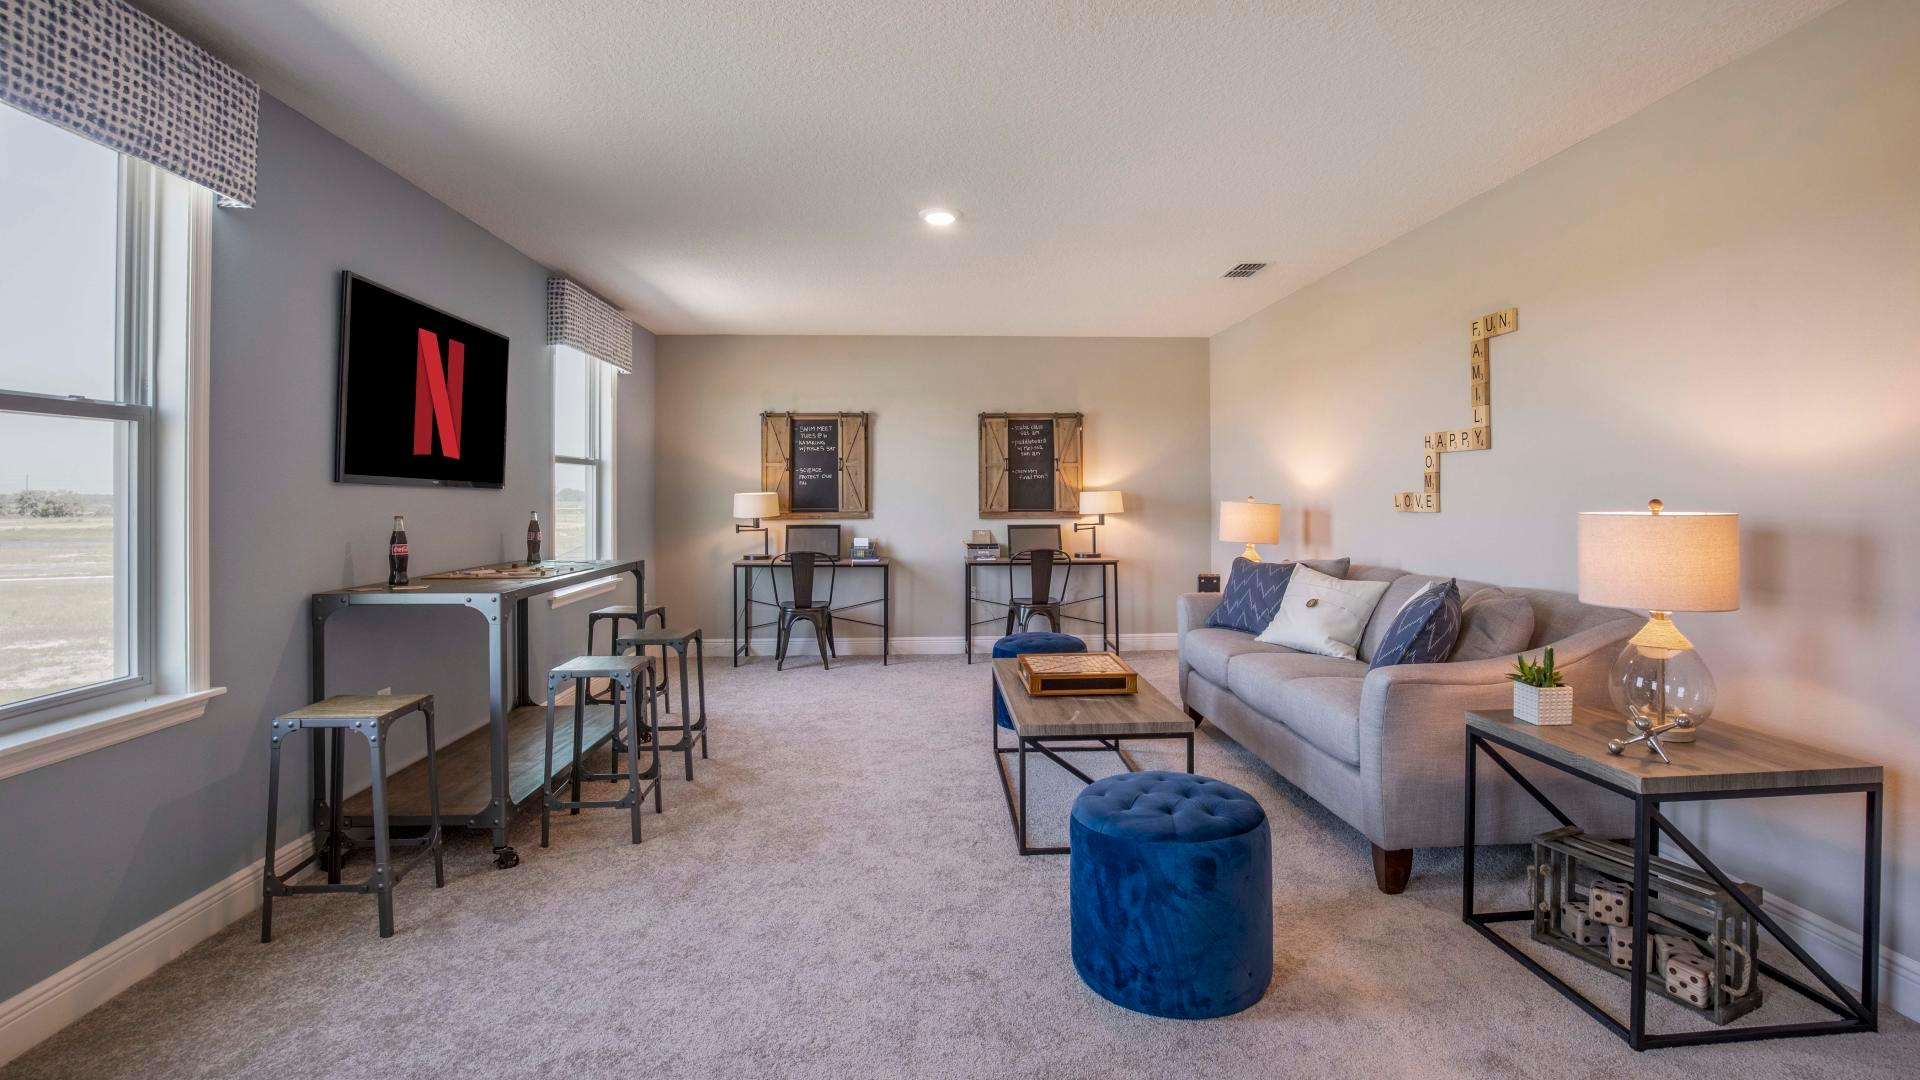 Living Area featured in the Columbus By Maronda Homes in Daytona Beach, FL